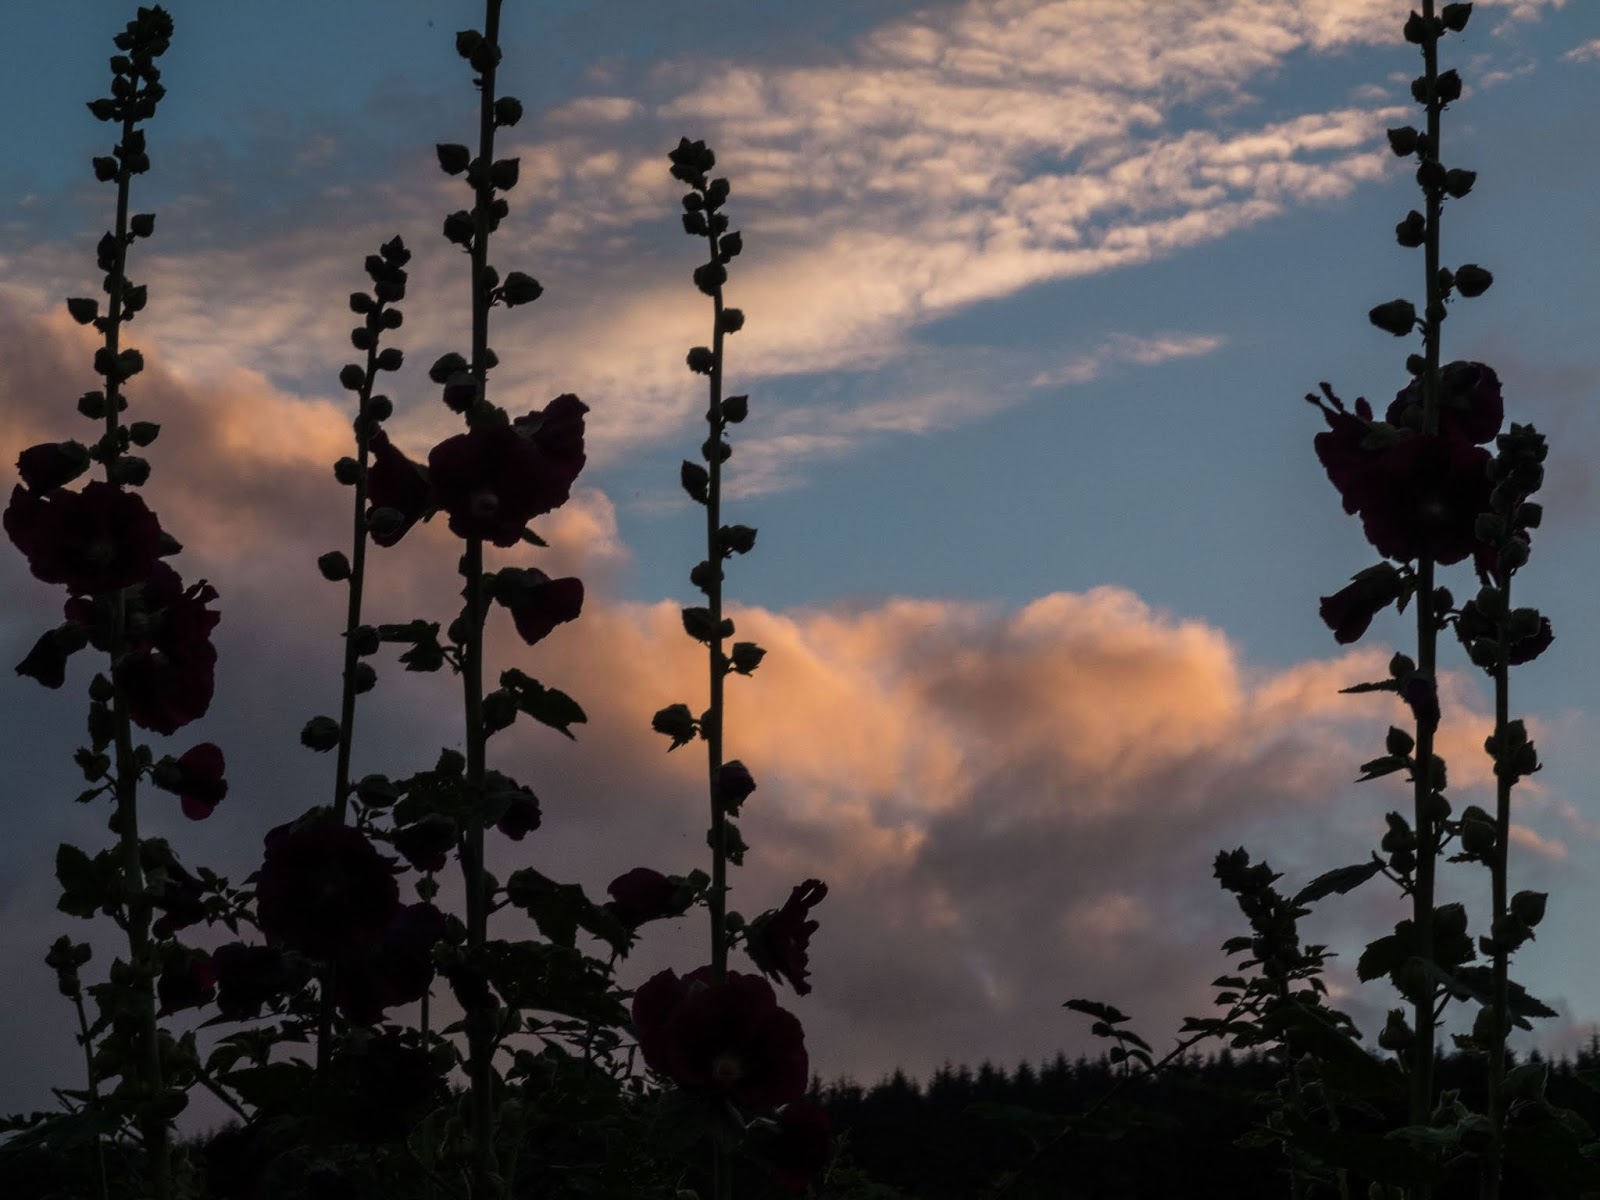 Tall Hollyhock flowers with sunset clouds behind them.